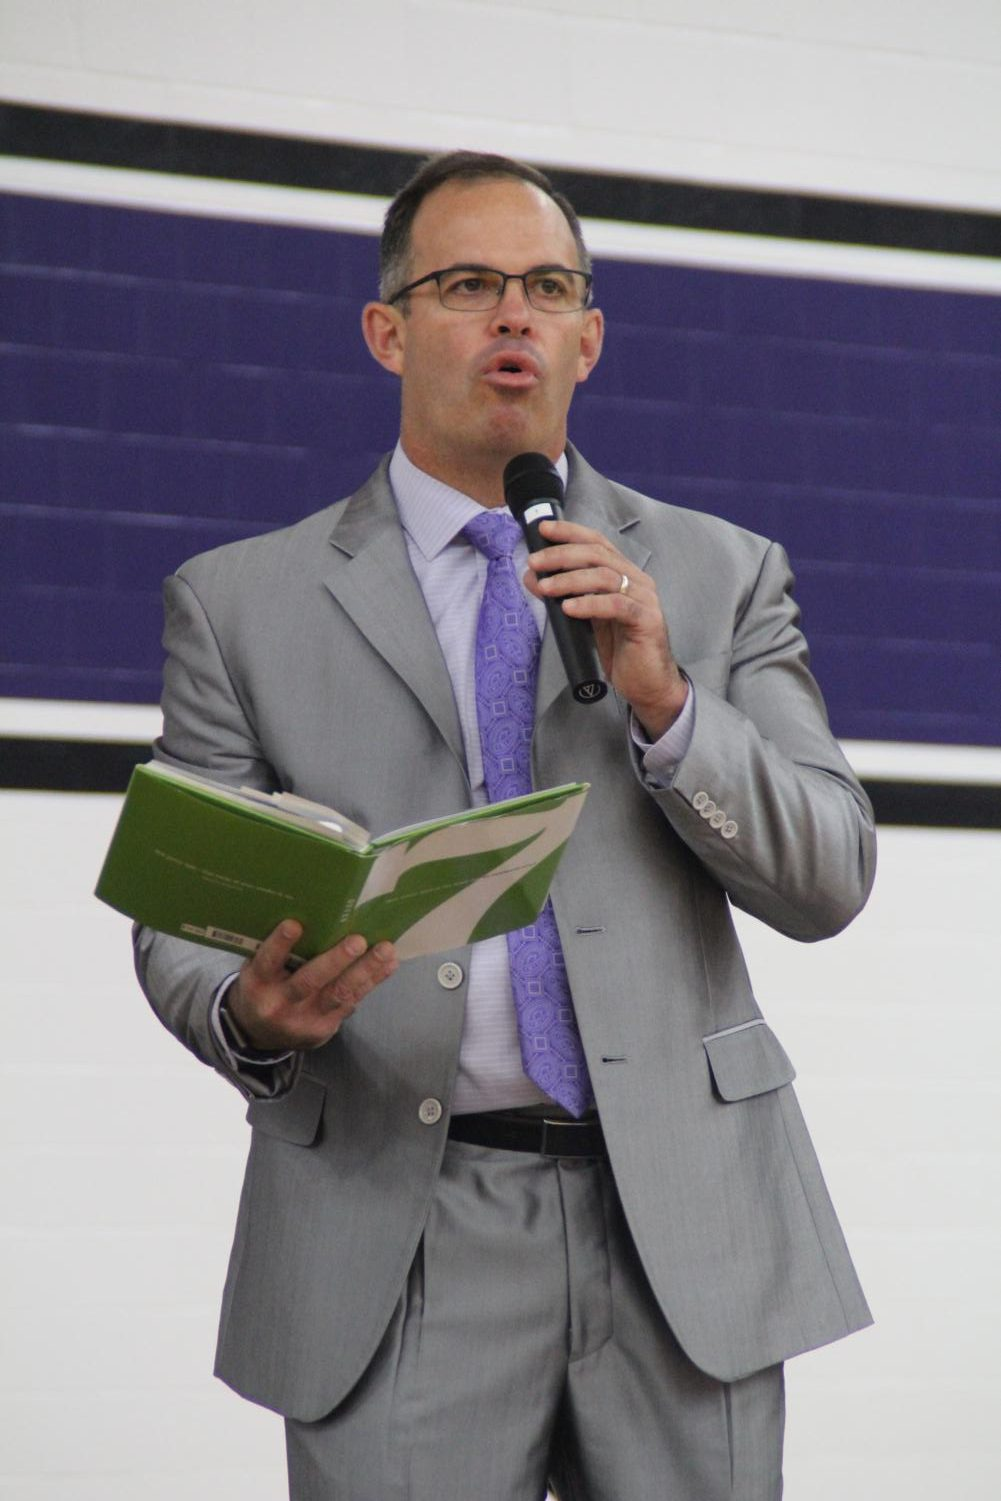 Dr. Jeff Butts addresses the crowd at the opening day ceremonies in July. This past weekend he was named the top superintendent in Indiana.